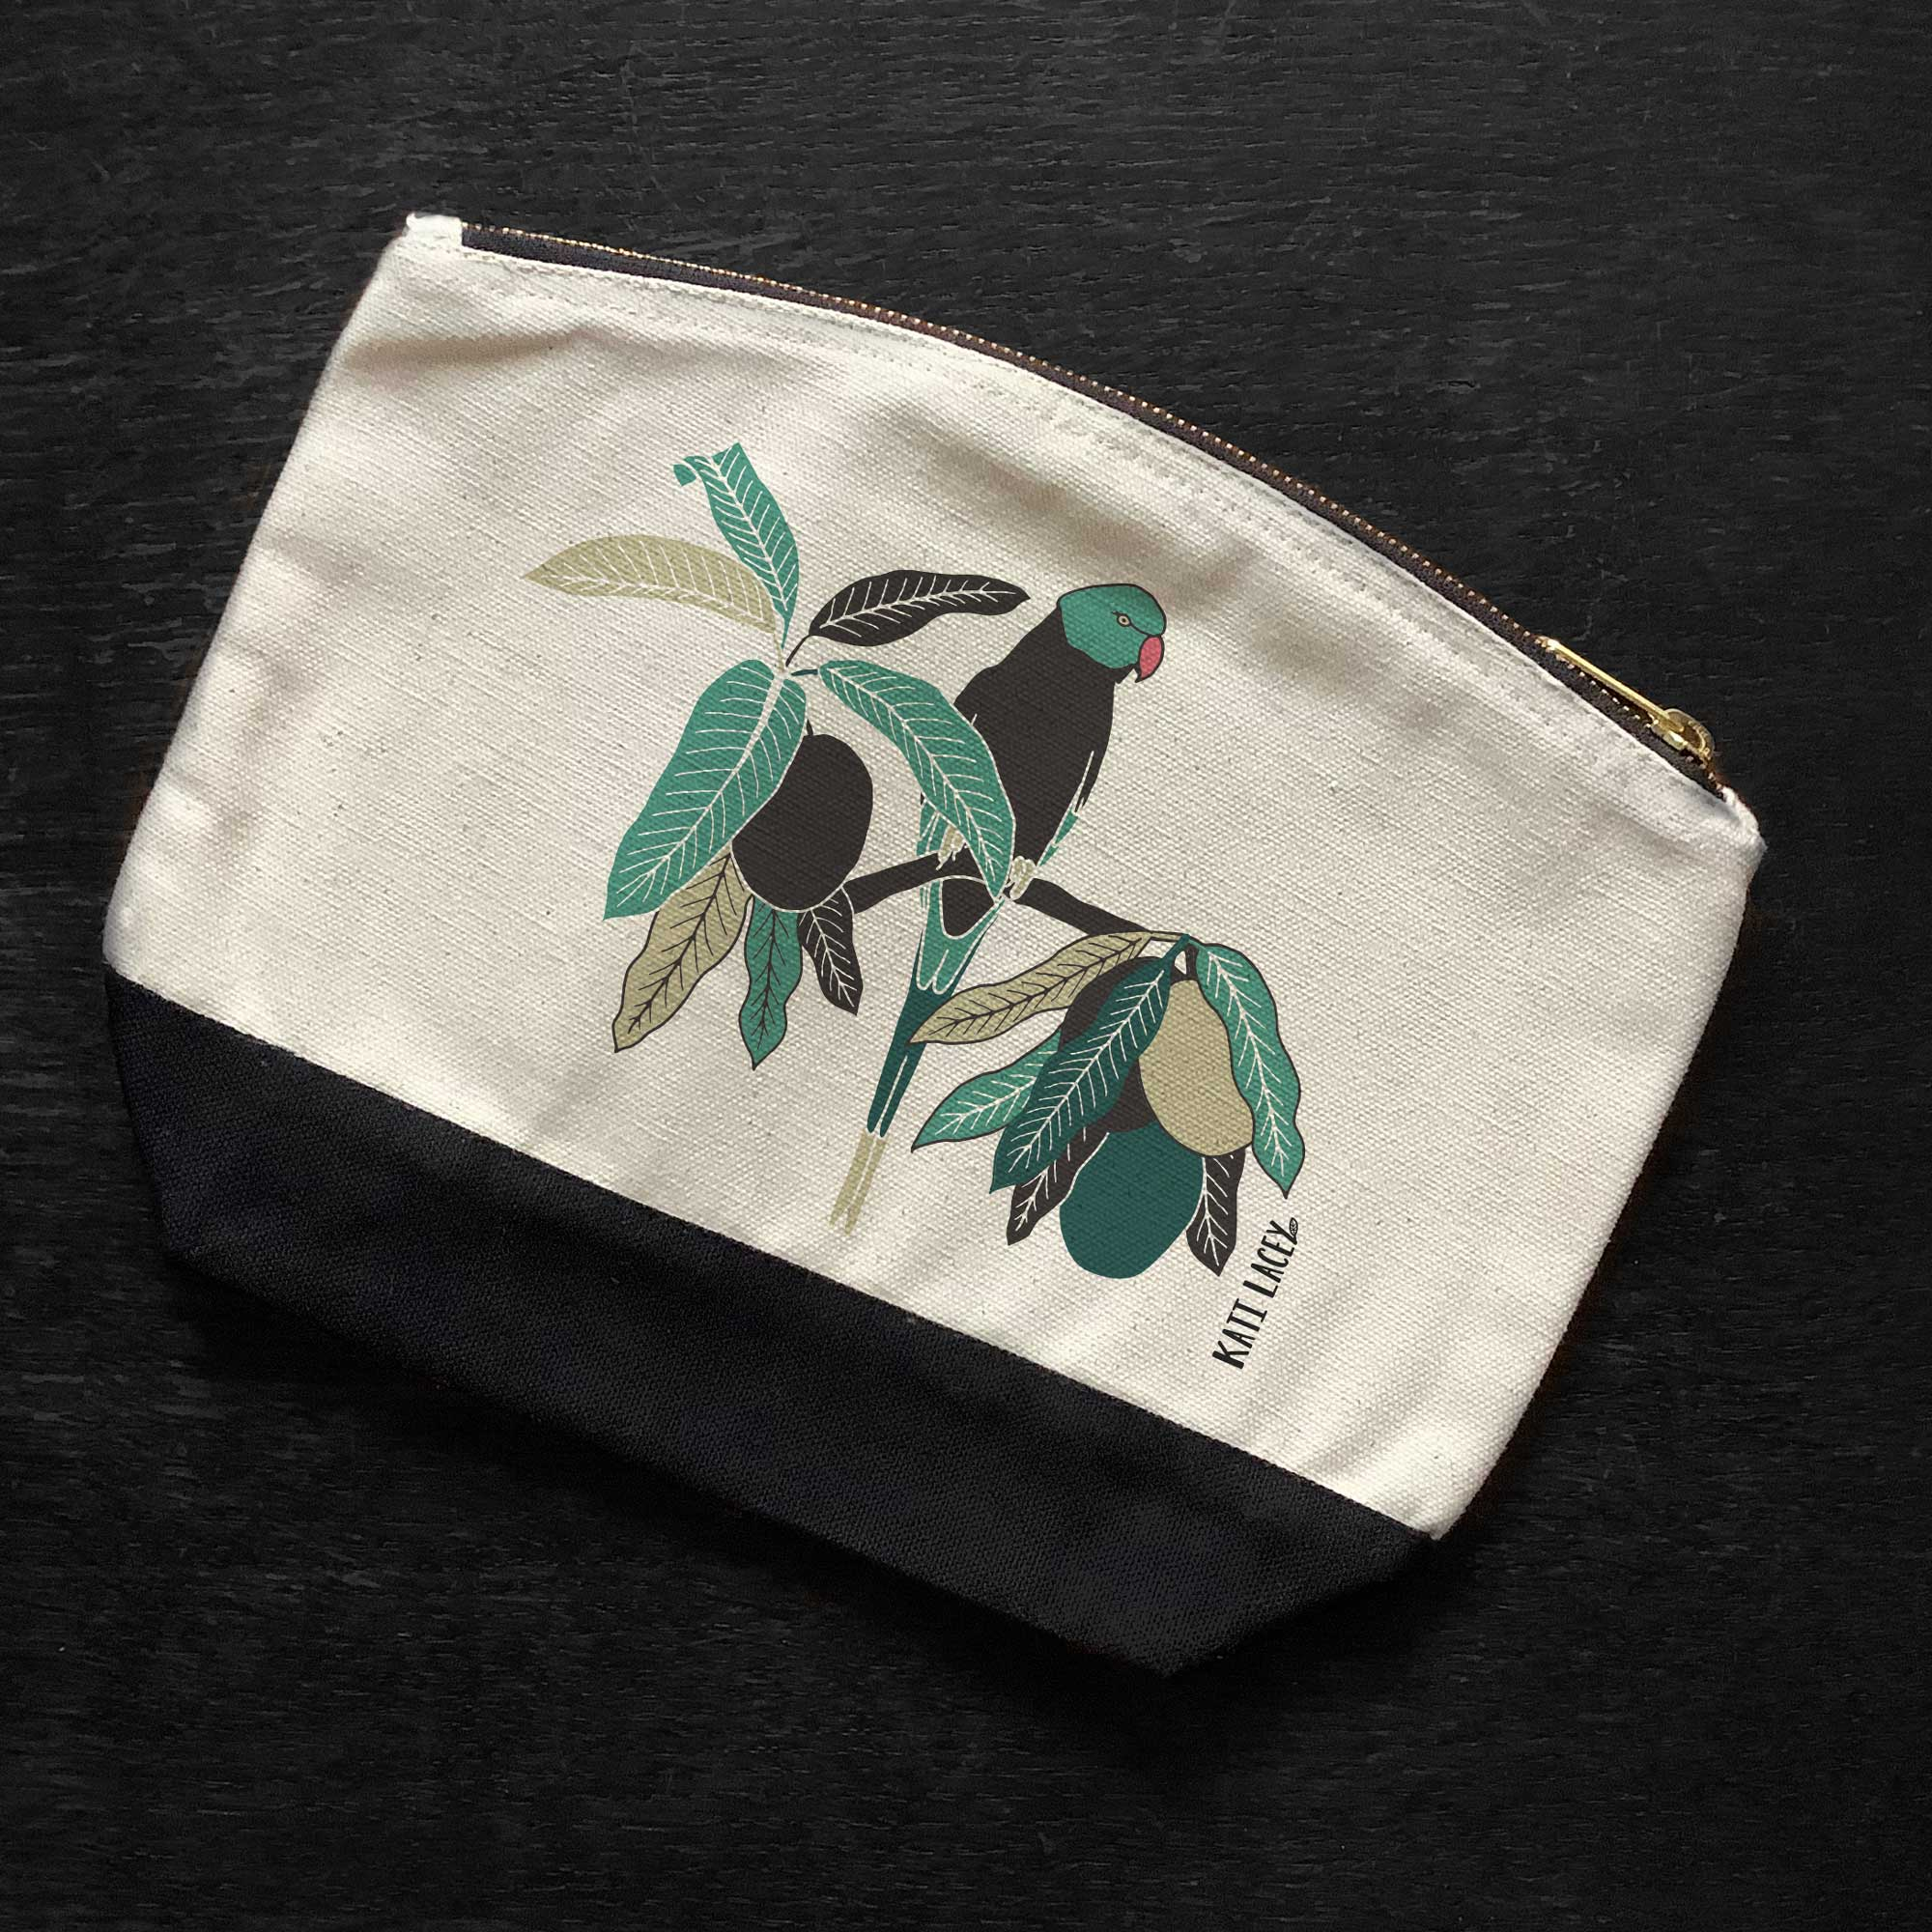 Parakeet on pouch-washbag-toiletry bag-pencil case-make up bag-storage bag for travel-medication bag-luxury